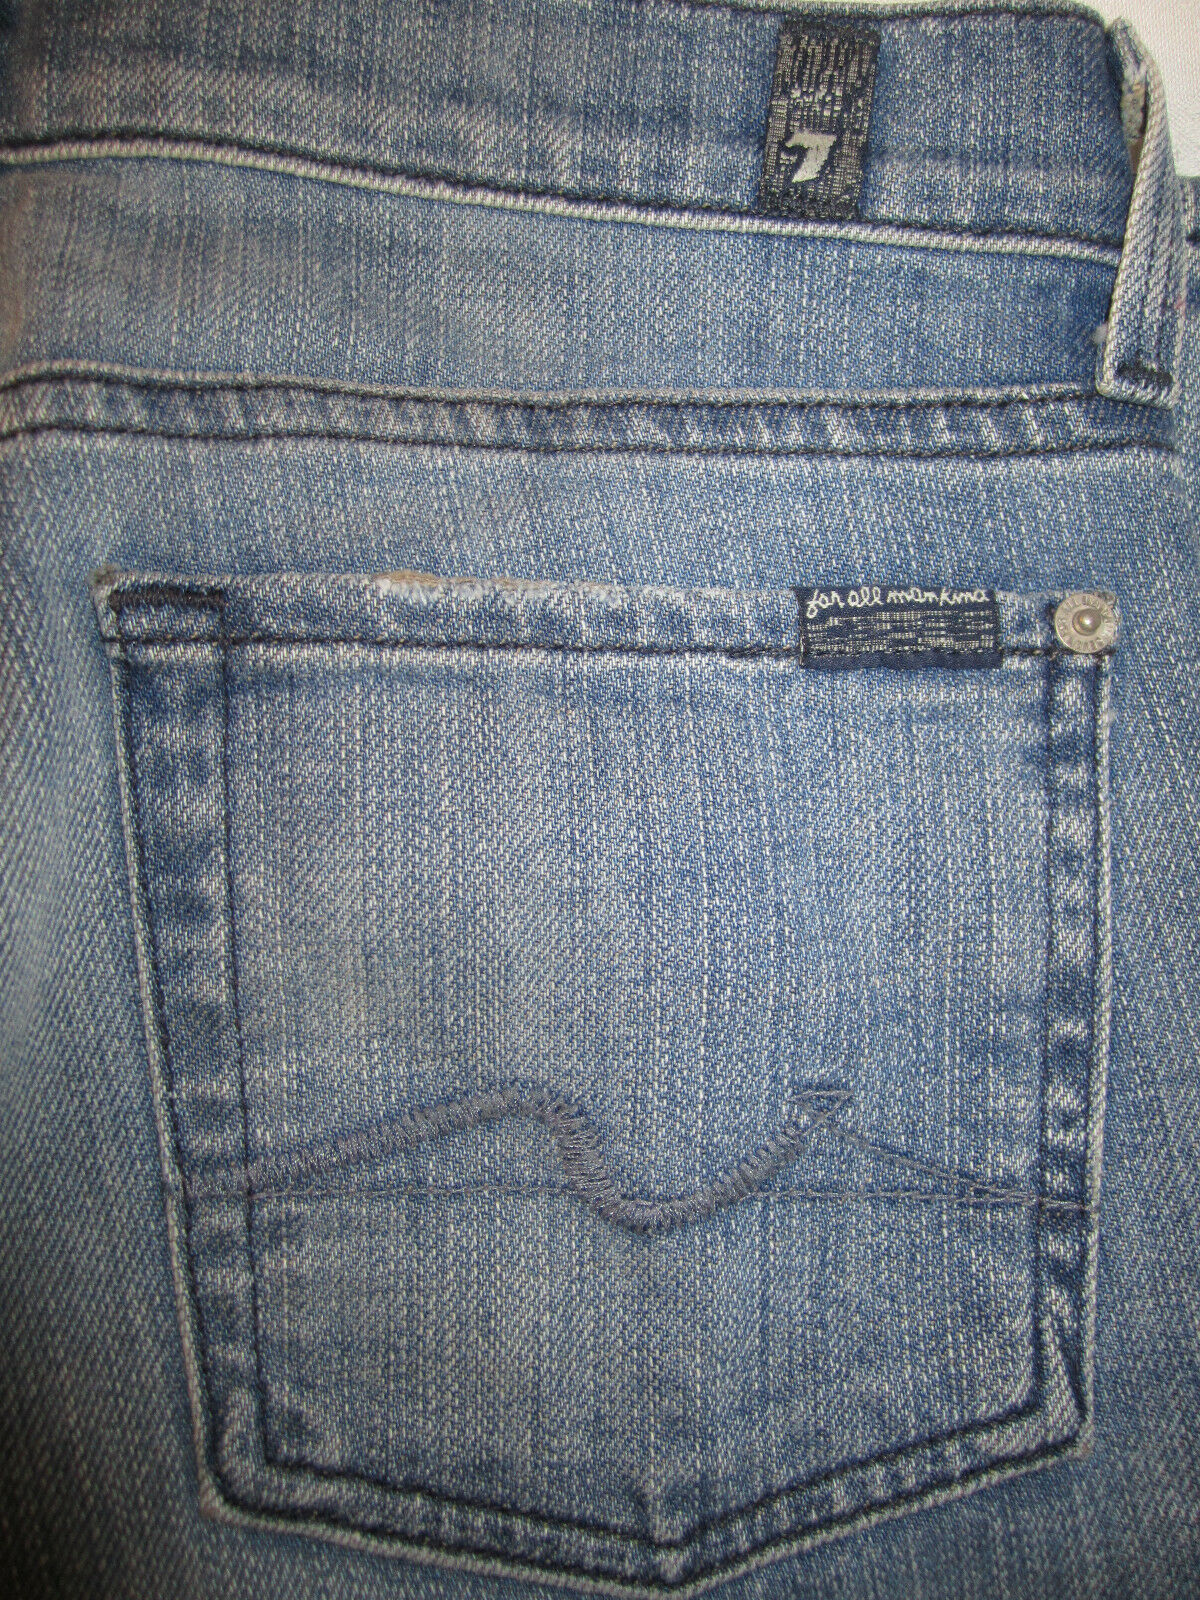 7FAM 7 for all Mankind Straight Leg Annapolis QC Jeans - Size 27 x 34 EUC